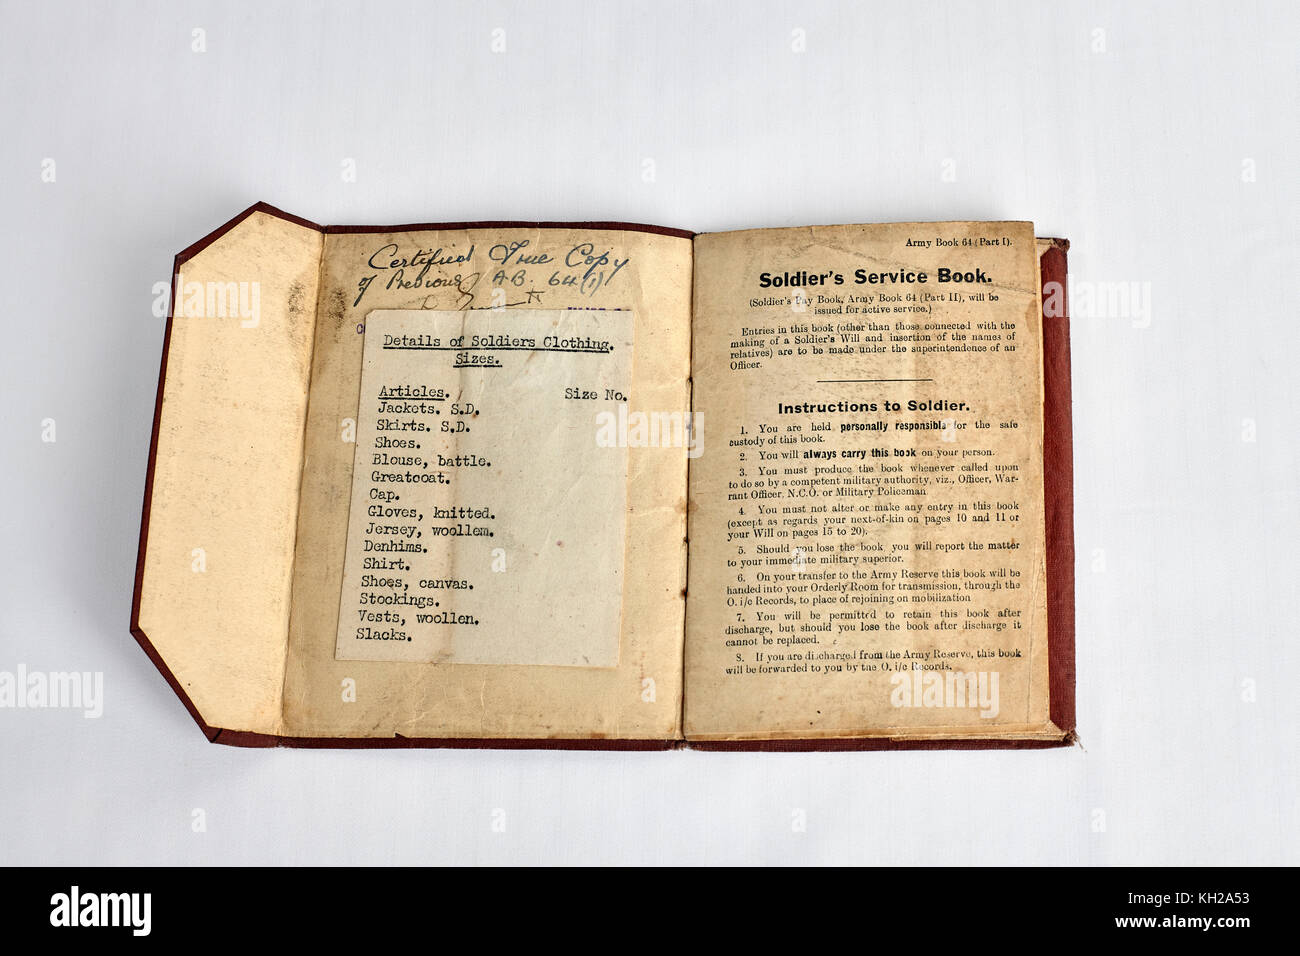 World war 2 British soldiers service book - Stock Image